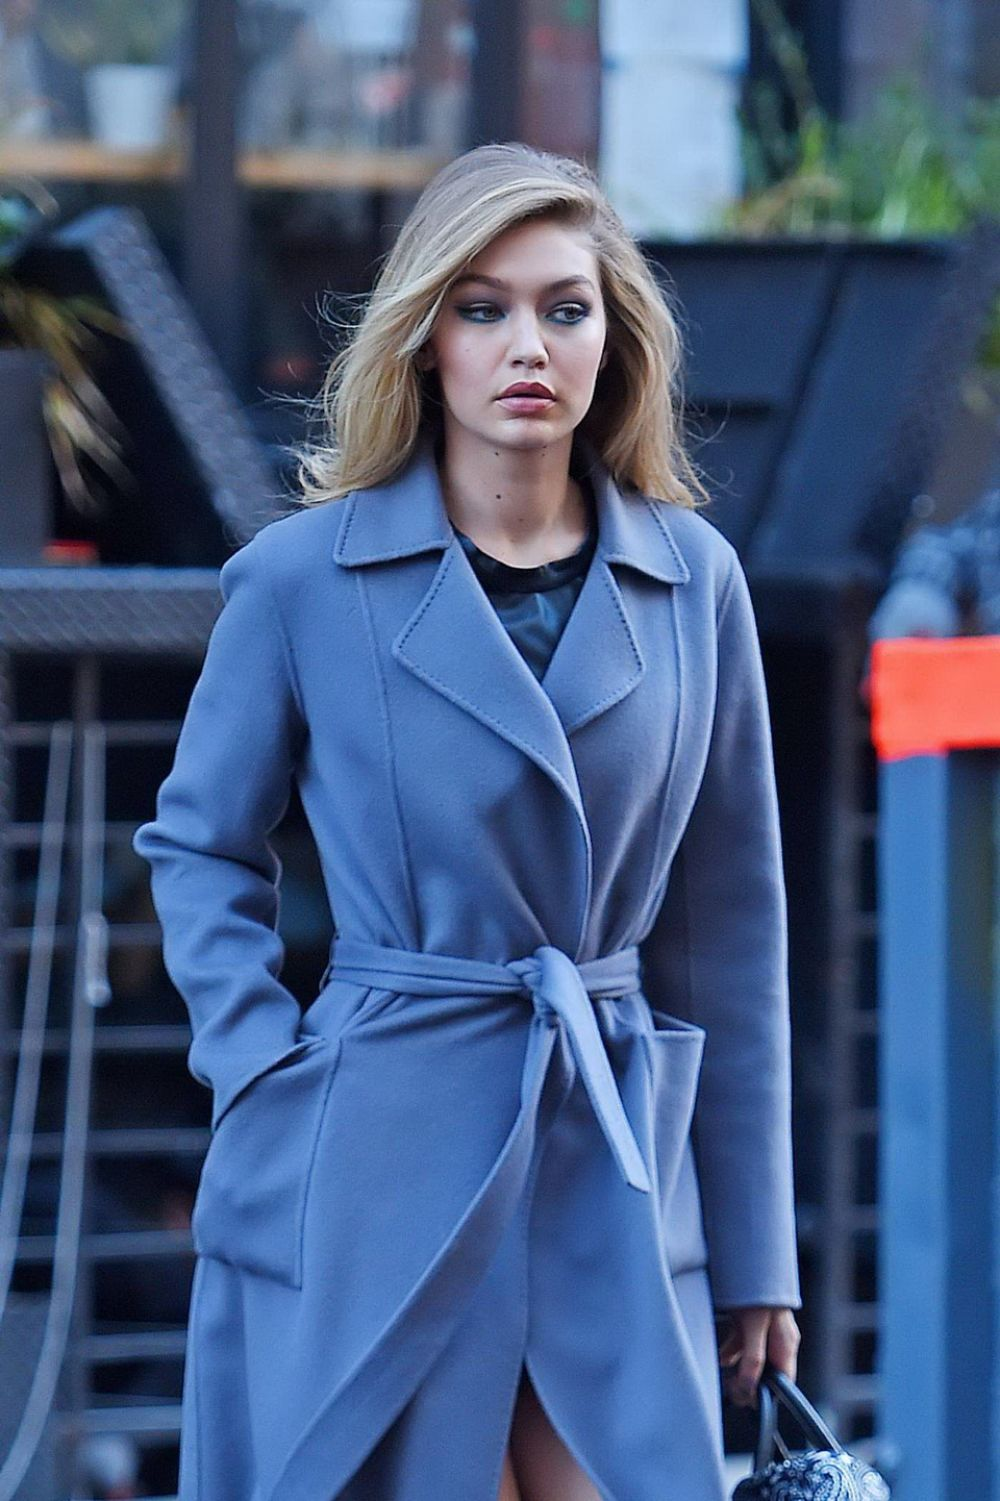 GIGI HADID on the Set of Maybelline Photoshoot at Brooklyn Bridge in New York 12/14/2015